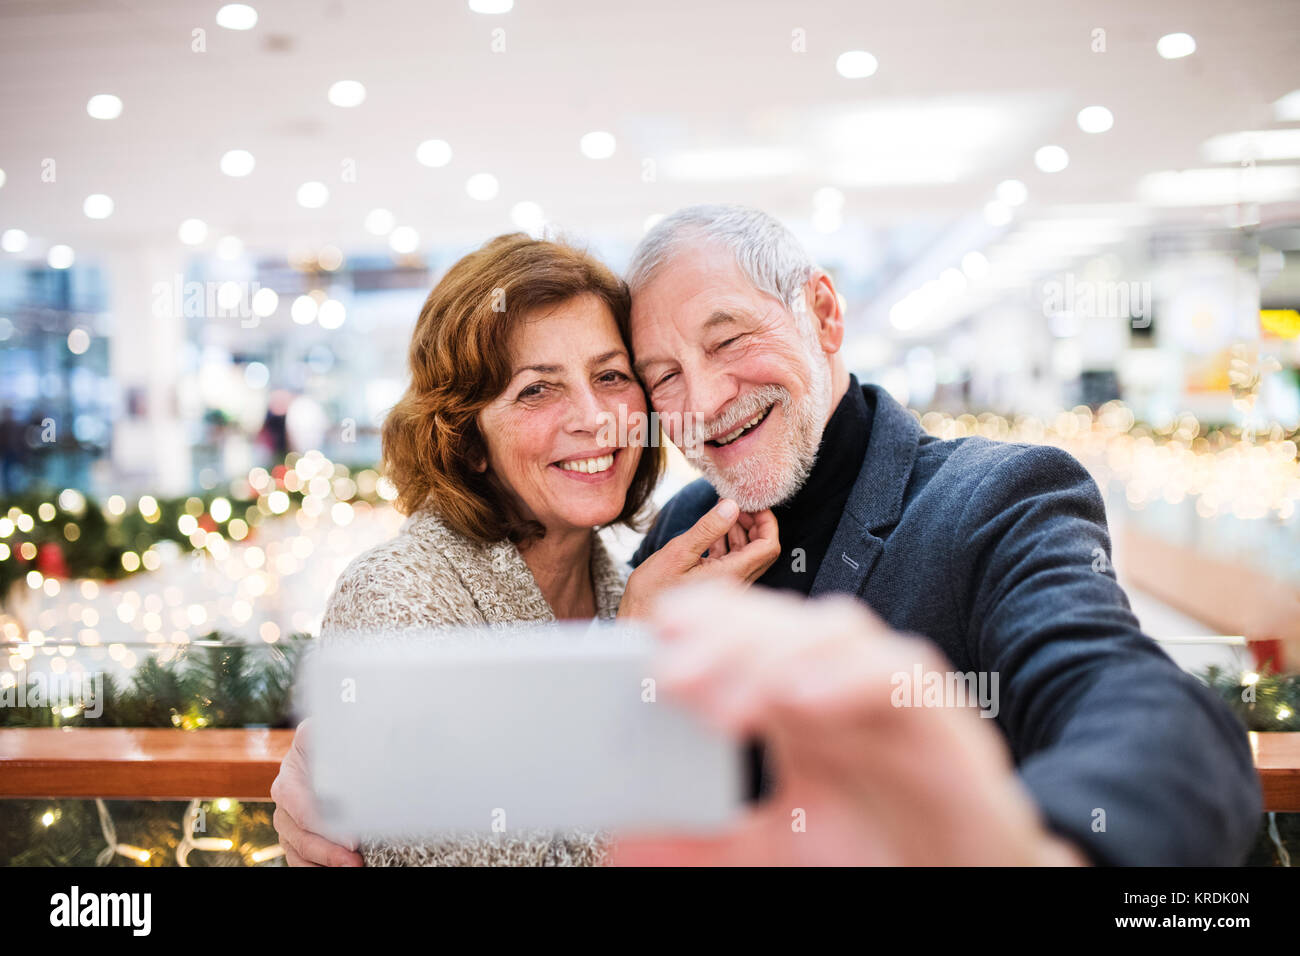 Coppia senior con lo smartphone facendo shopping di Natale. Immagini Stock